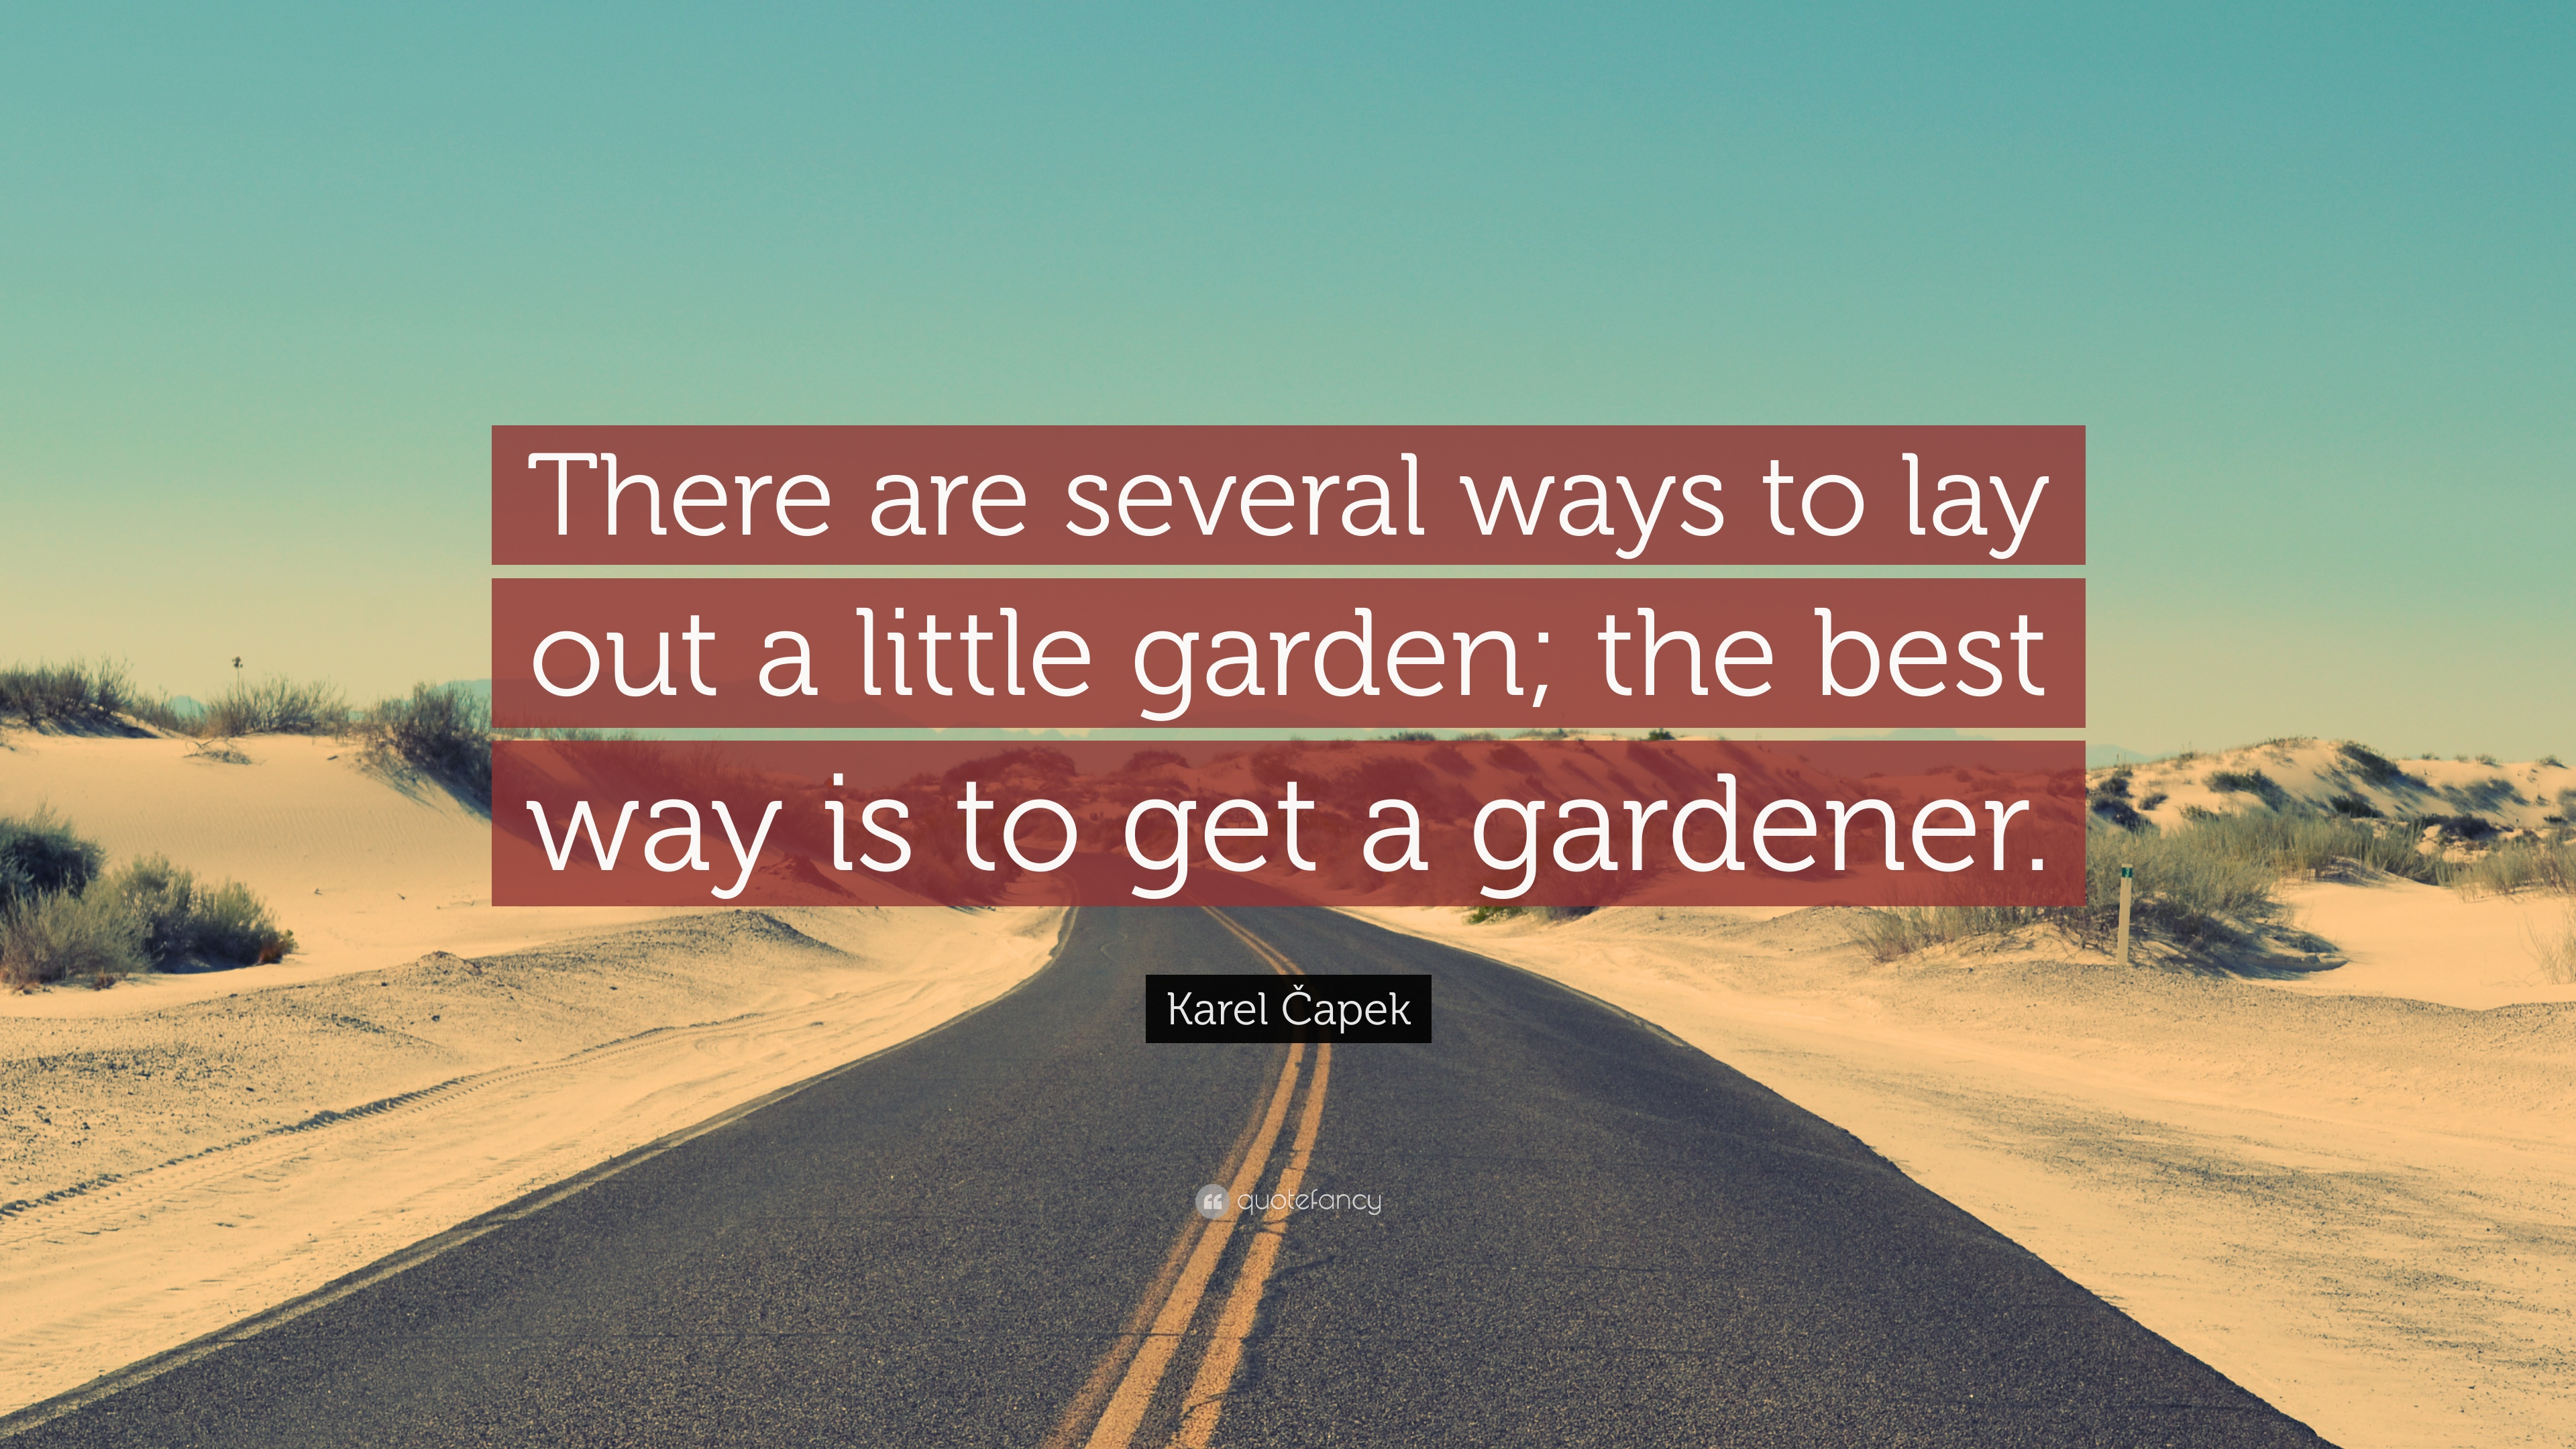 Karel apek quotes 38 wallpapers quotefancy for Best way to lay out a garden